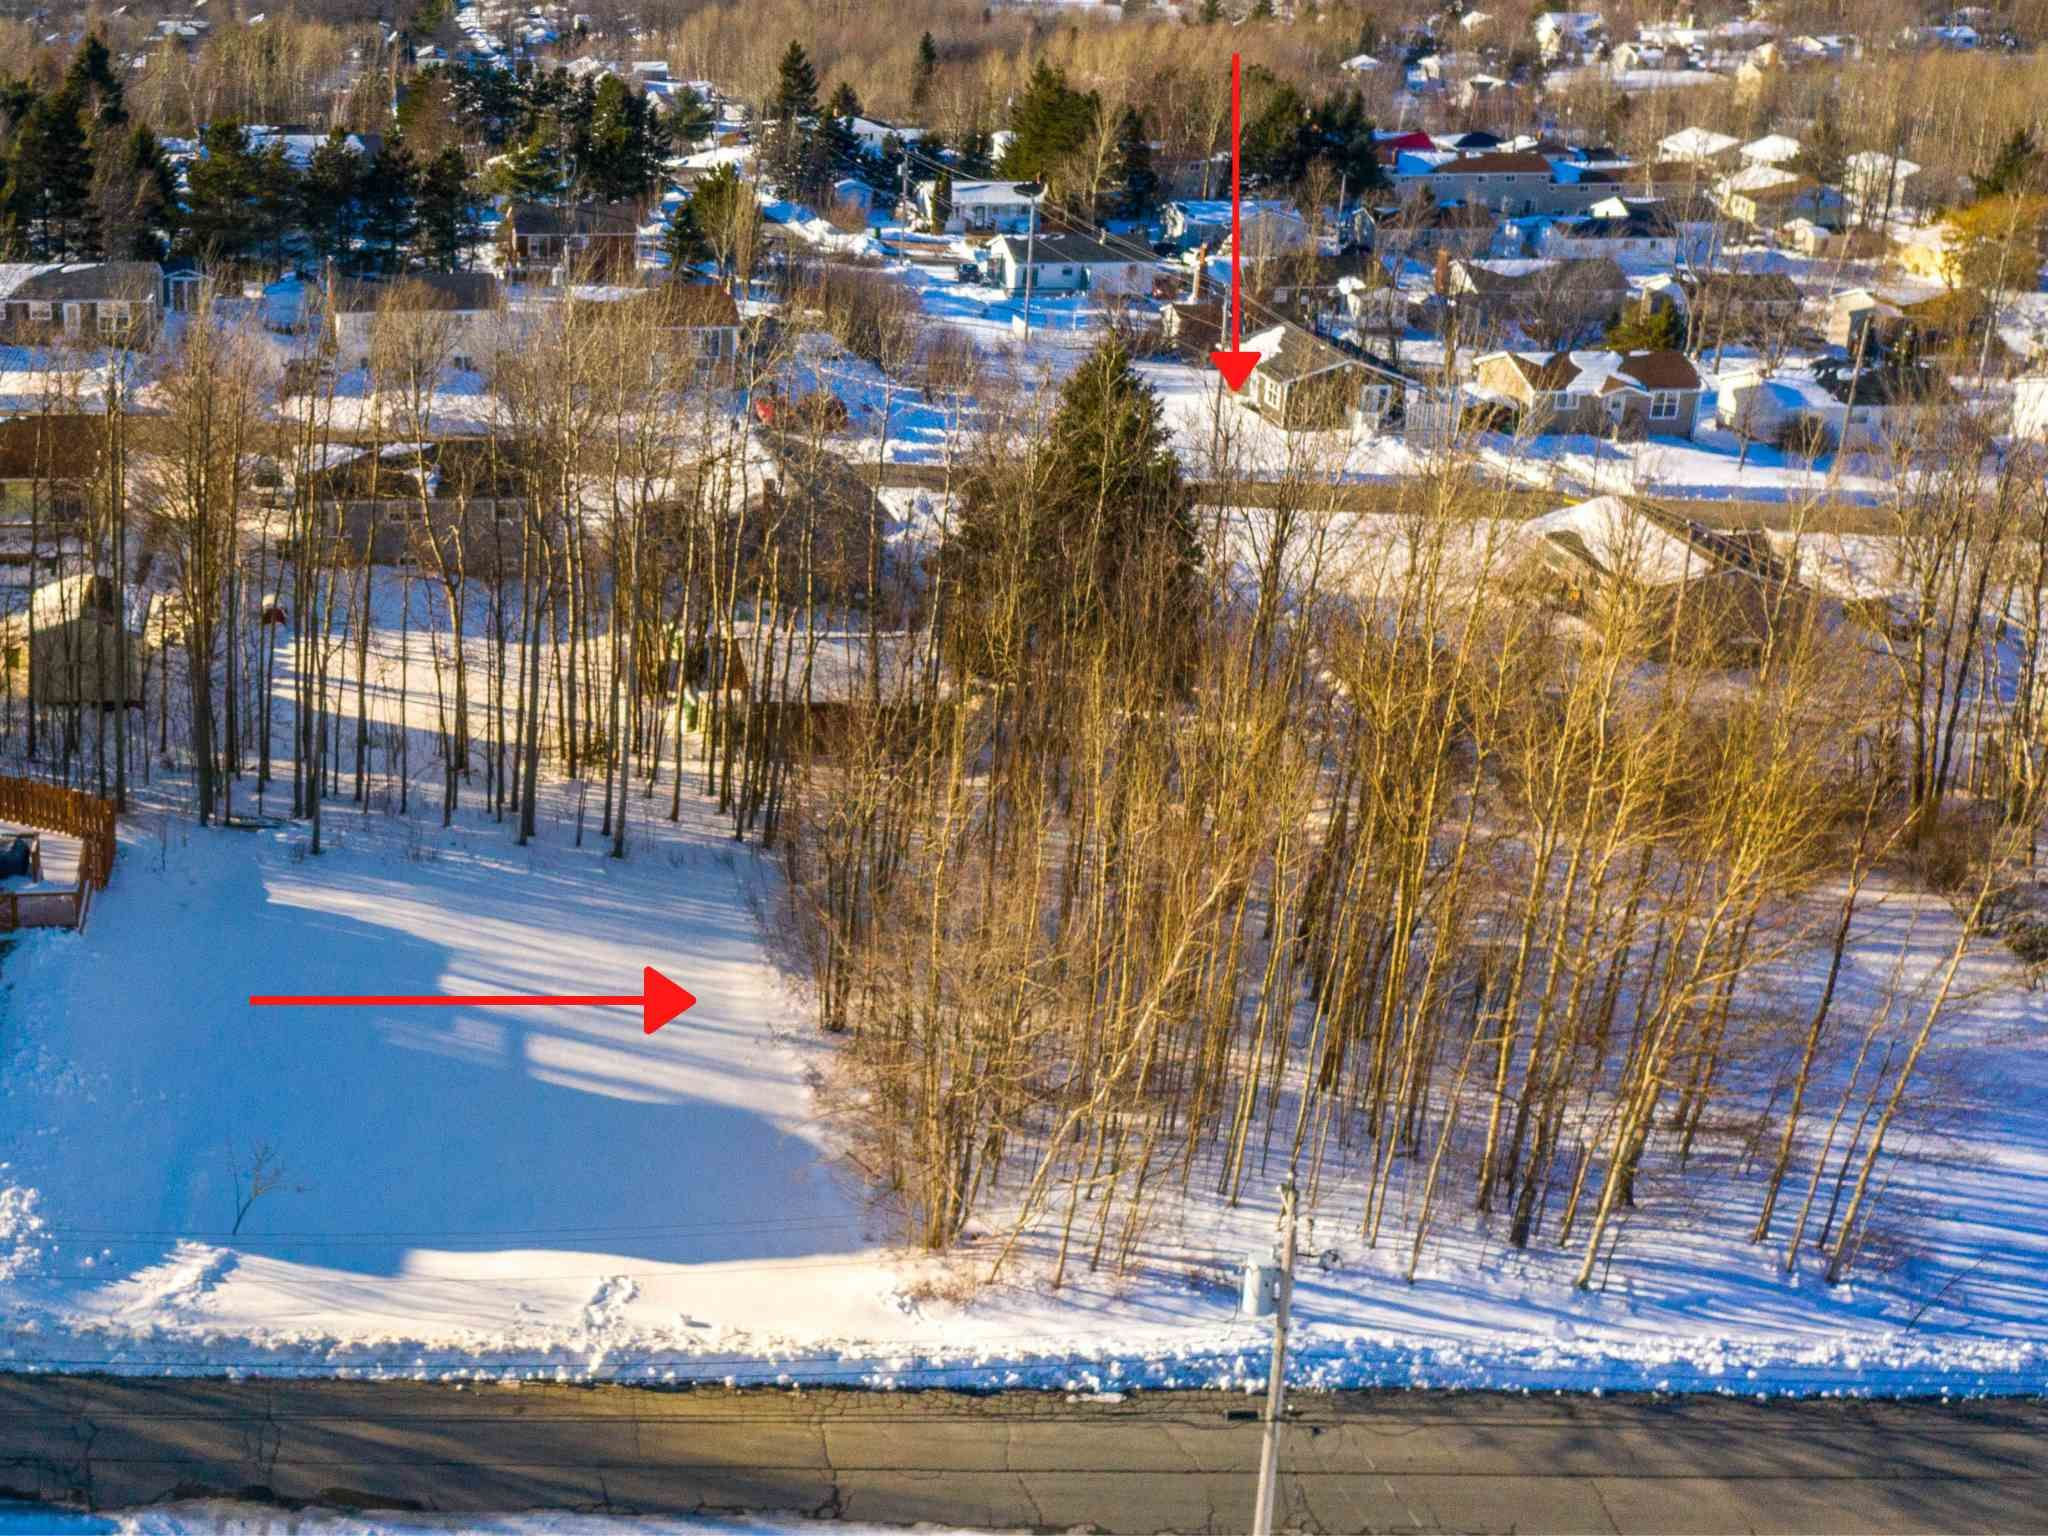 Main Photo: Lot 805 Fourteenth Street in Trenton: 107-Trenton,Westville,Pictou Vacant Land for sale (Northern Region)  : MLS®# 202102551